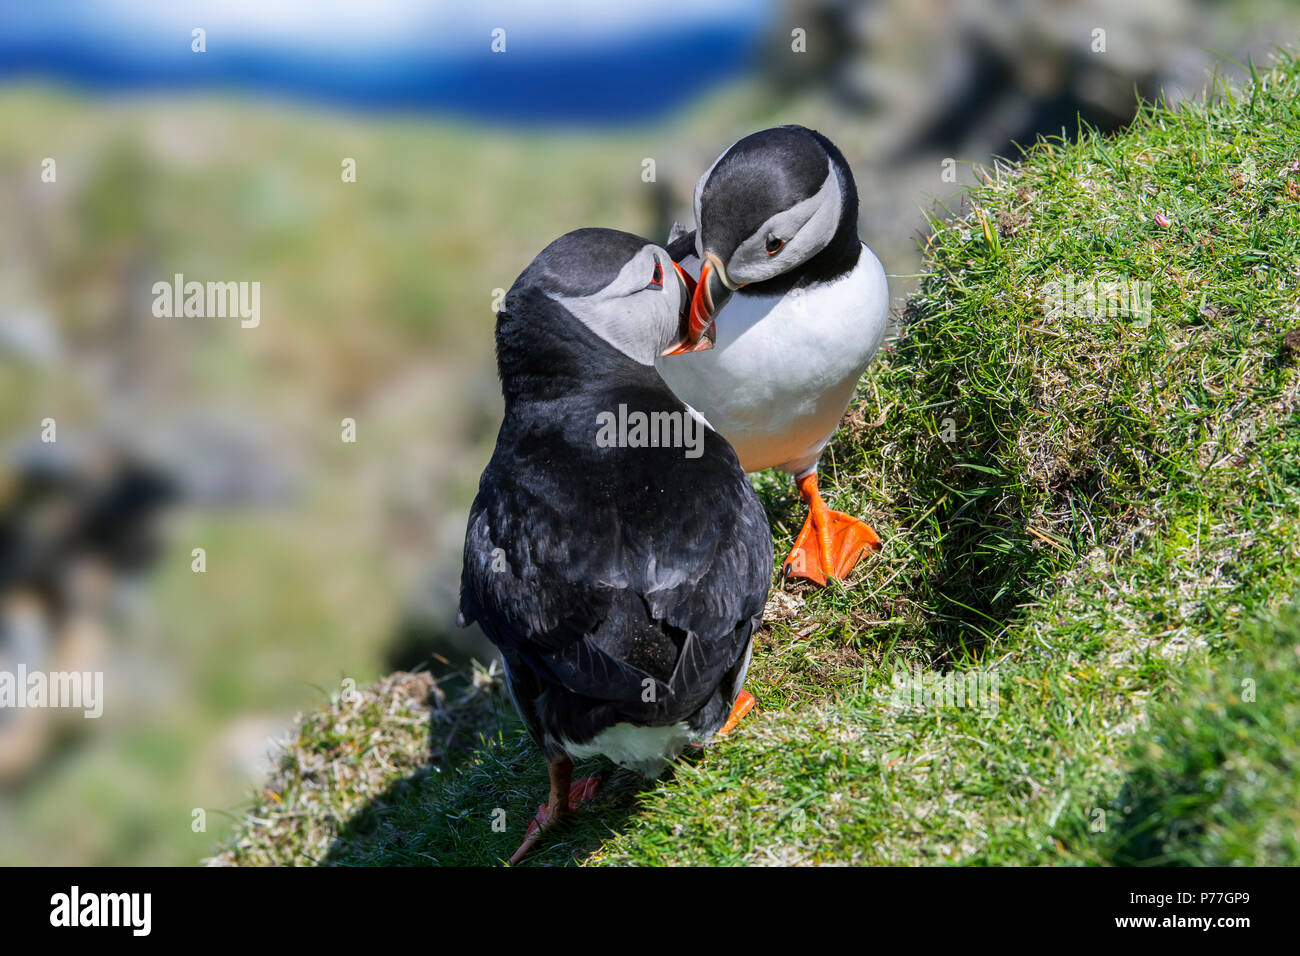 Atlantic puffins (Fratercula arctica) billing in front of burrow on sea cliff top in seabird colony, Hermaness, Unst, Shetland Islands, Scotland, UK - Stock Image